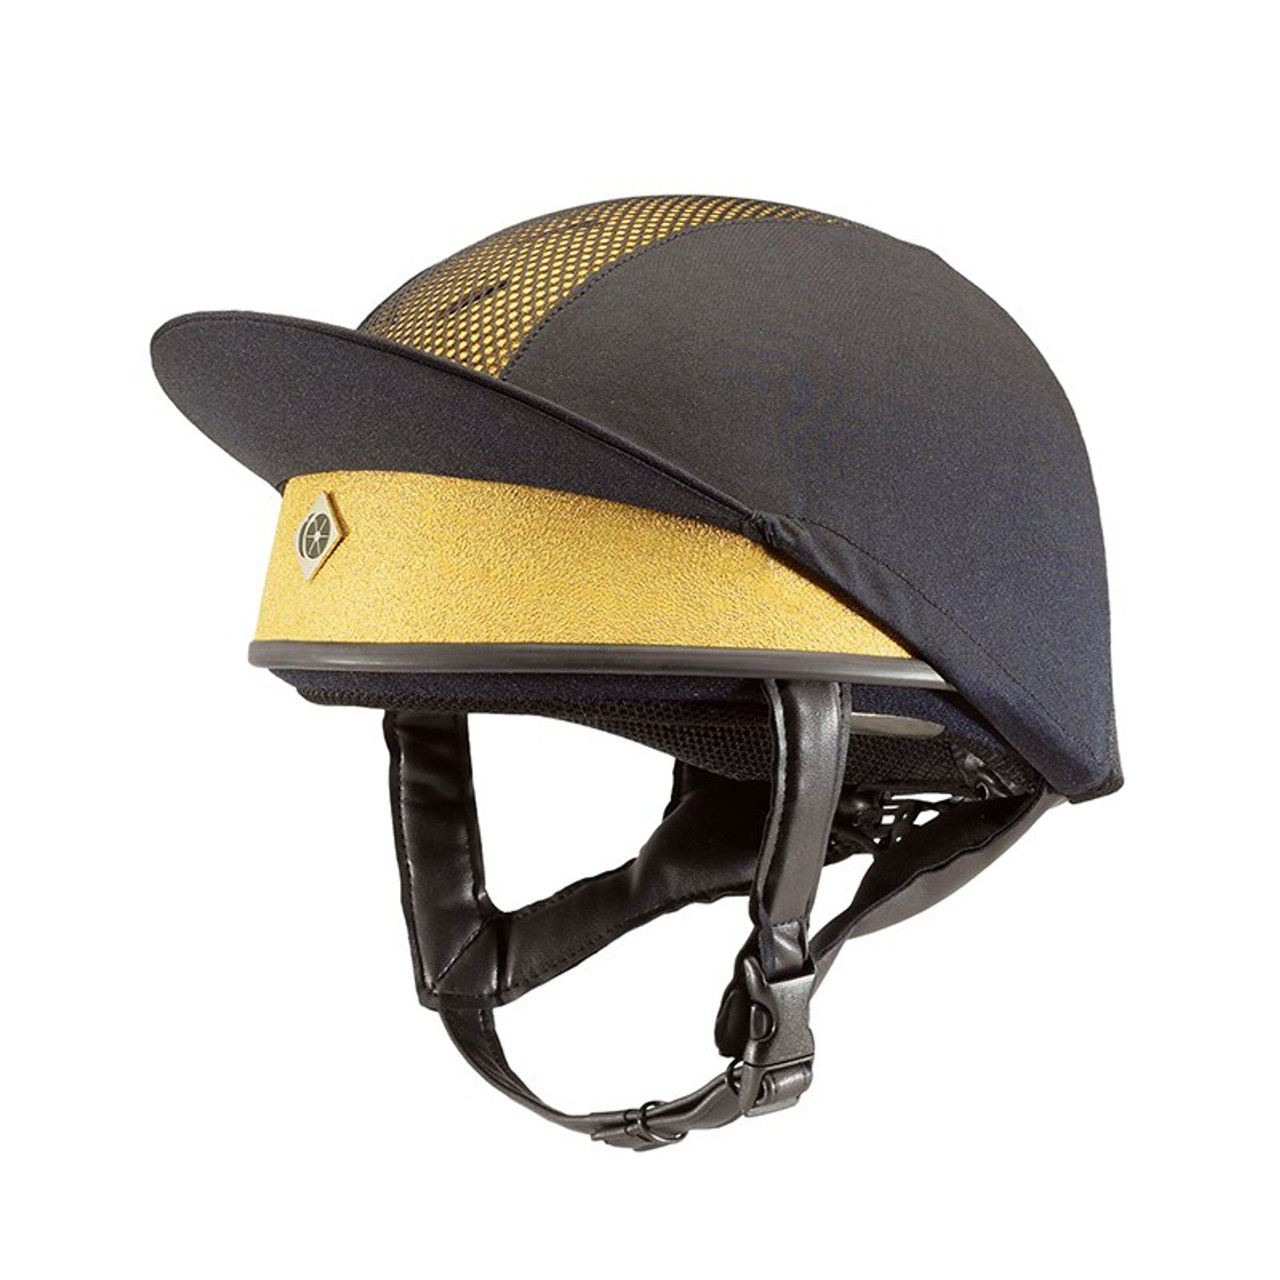 7157792a65d02 Charles Owen PRO II Skull Cap Riding Hat Childrens - Gold - HOOVES AND  BOONIES